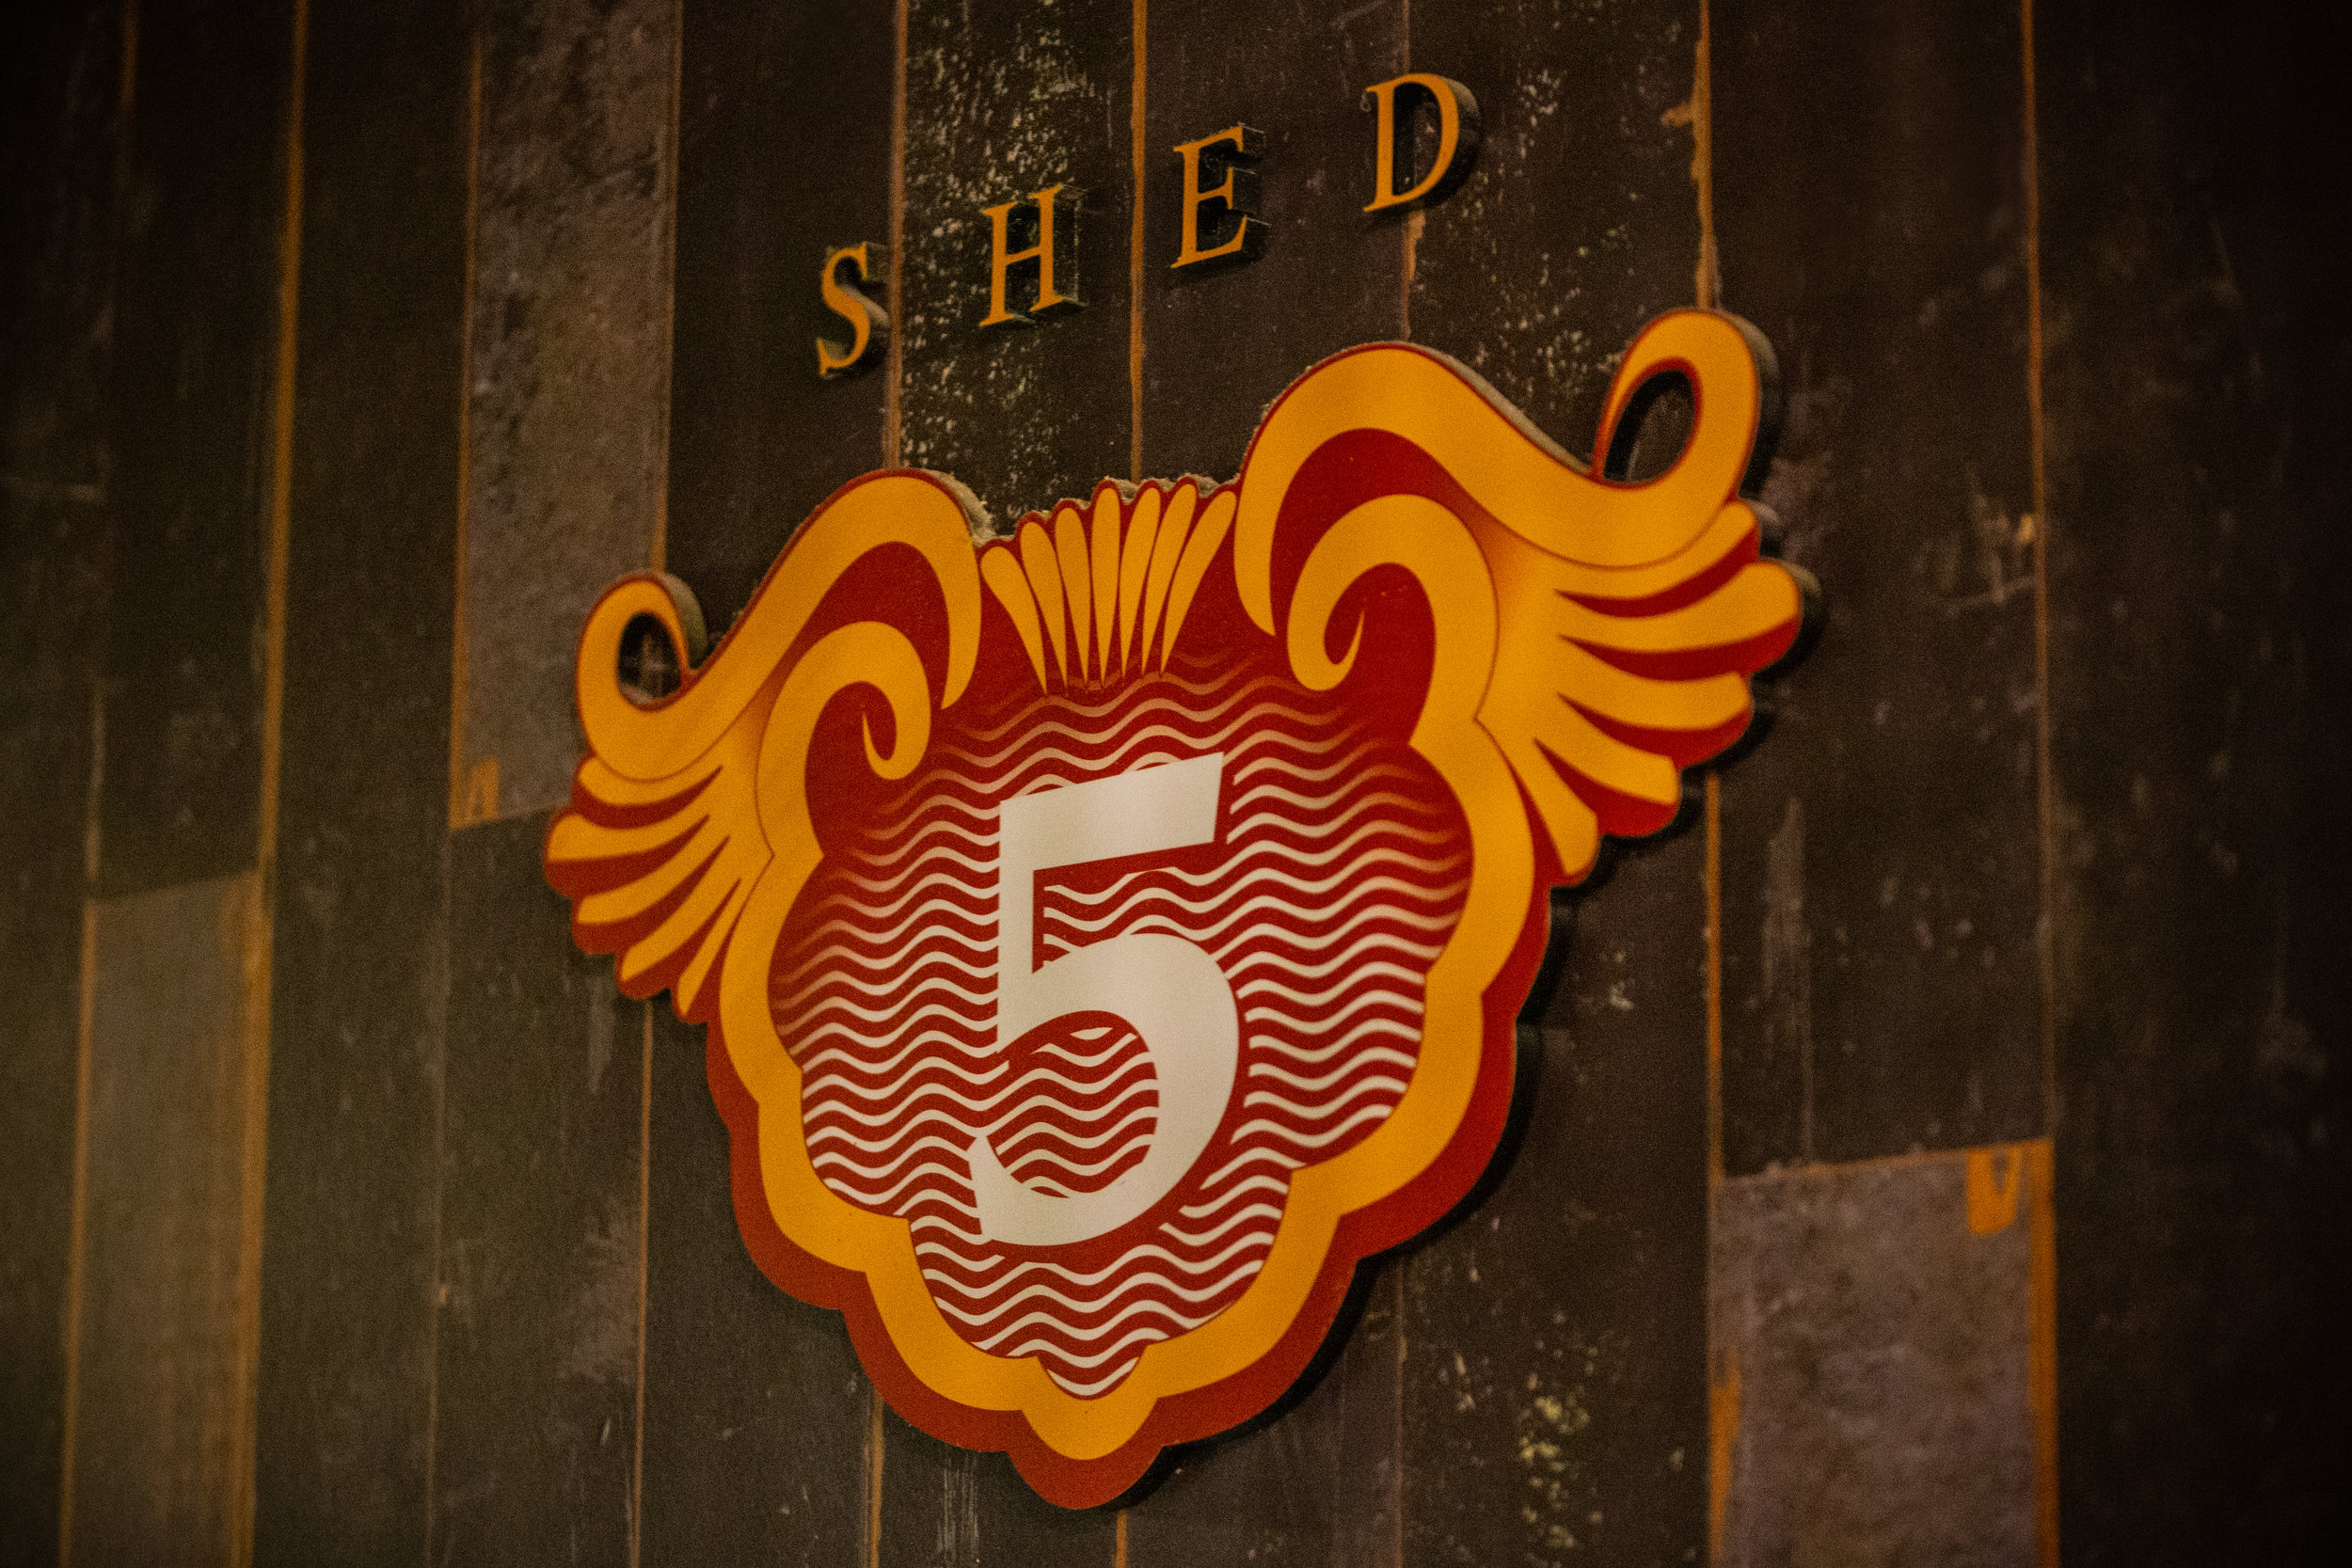 Shed5 Outstanding NZ FPWD 01.jpg